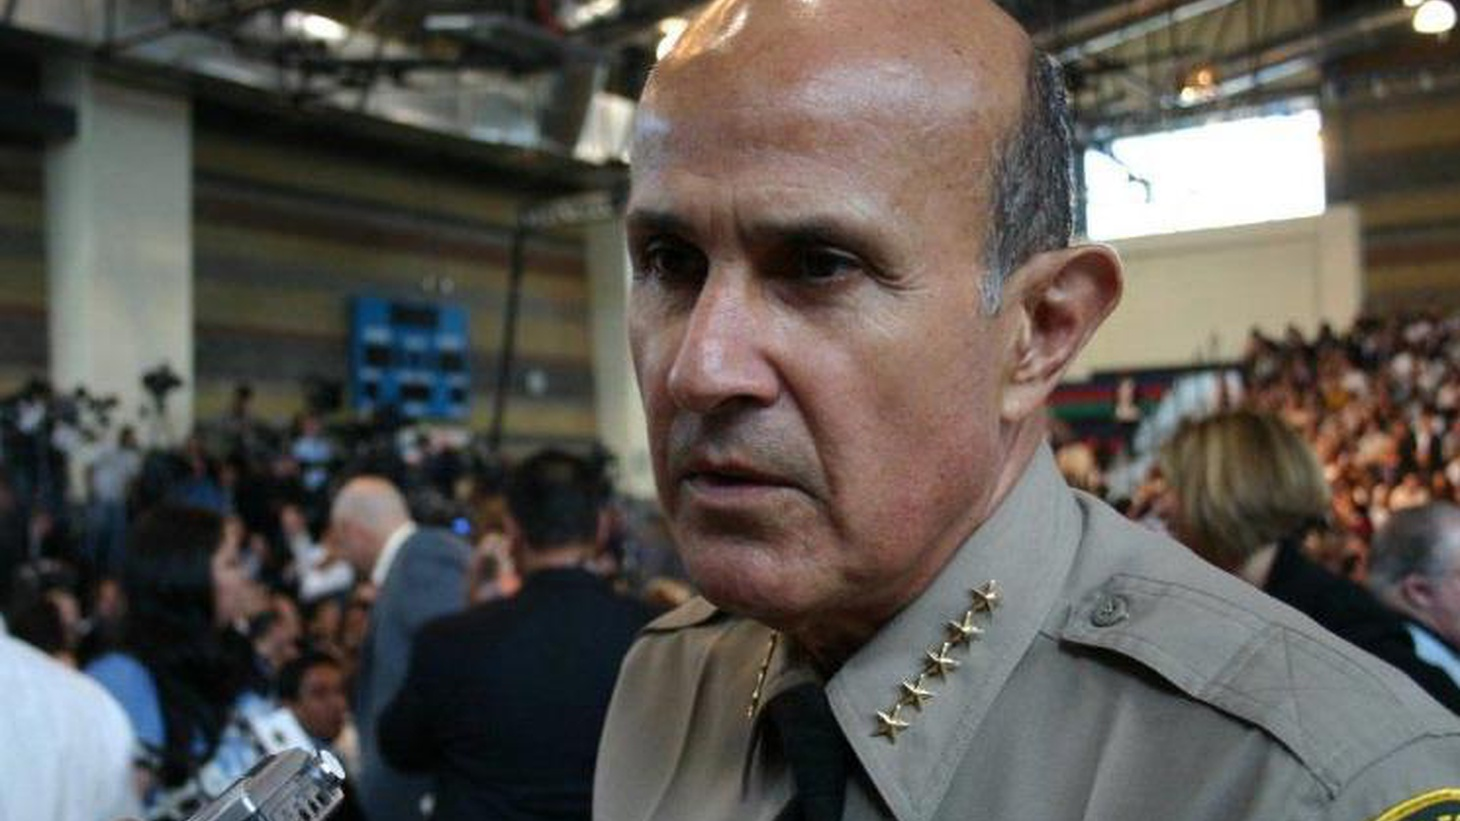 In the aftermath of reports about the continuation of brutal violence by deputies in LA County jails, the ACLU and others have called on Sheriff Lee Baca to resign his elected office.